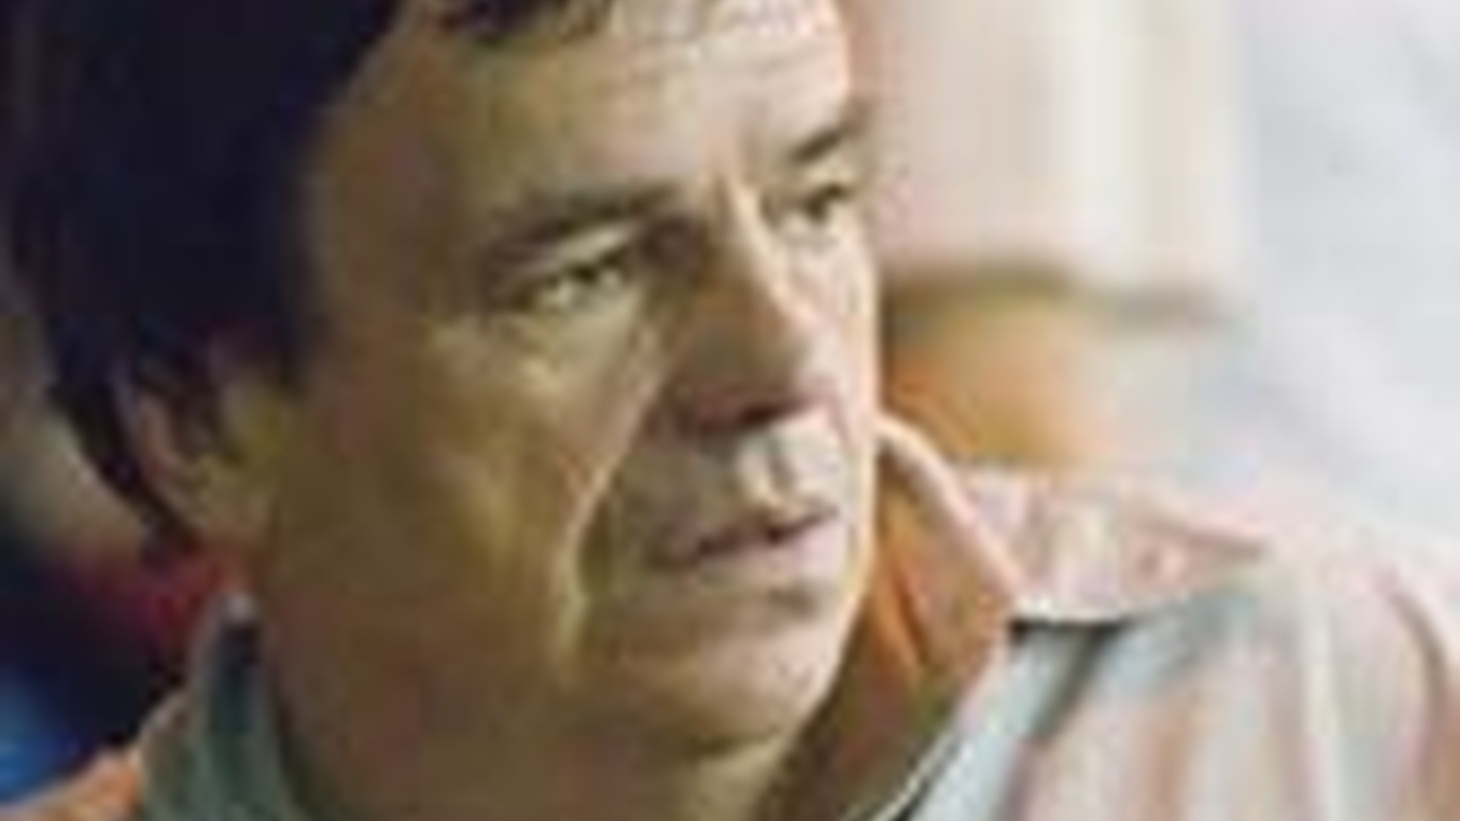 In this web-only edition of The Treatment, Elvis Mitchell interviews Irish director Neil Jordan during the Toronto International Film Festival about his latest movie The Brave One, starring Jodie Foster.